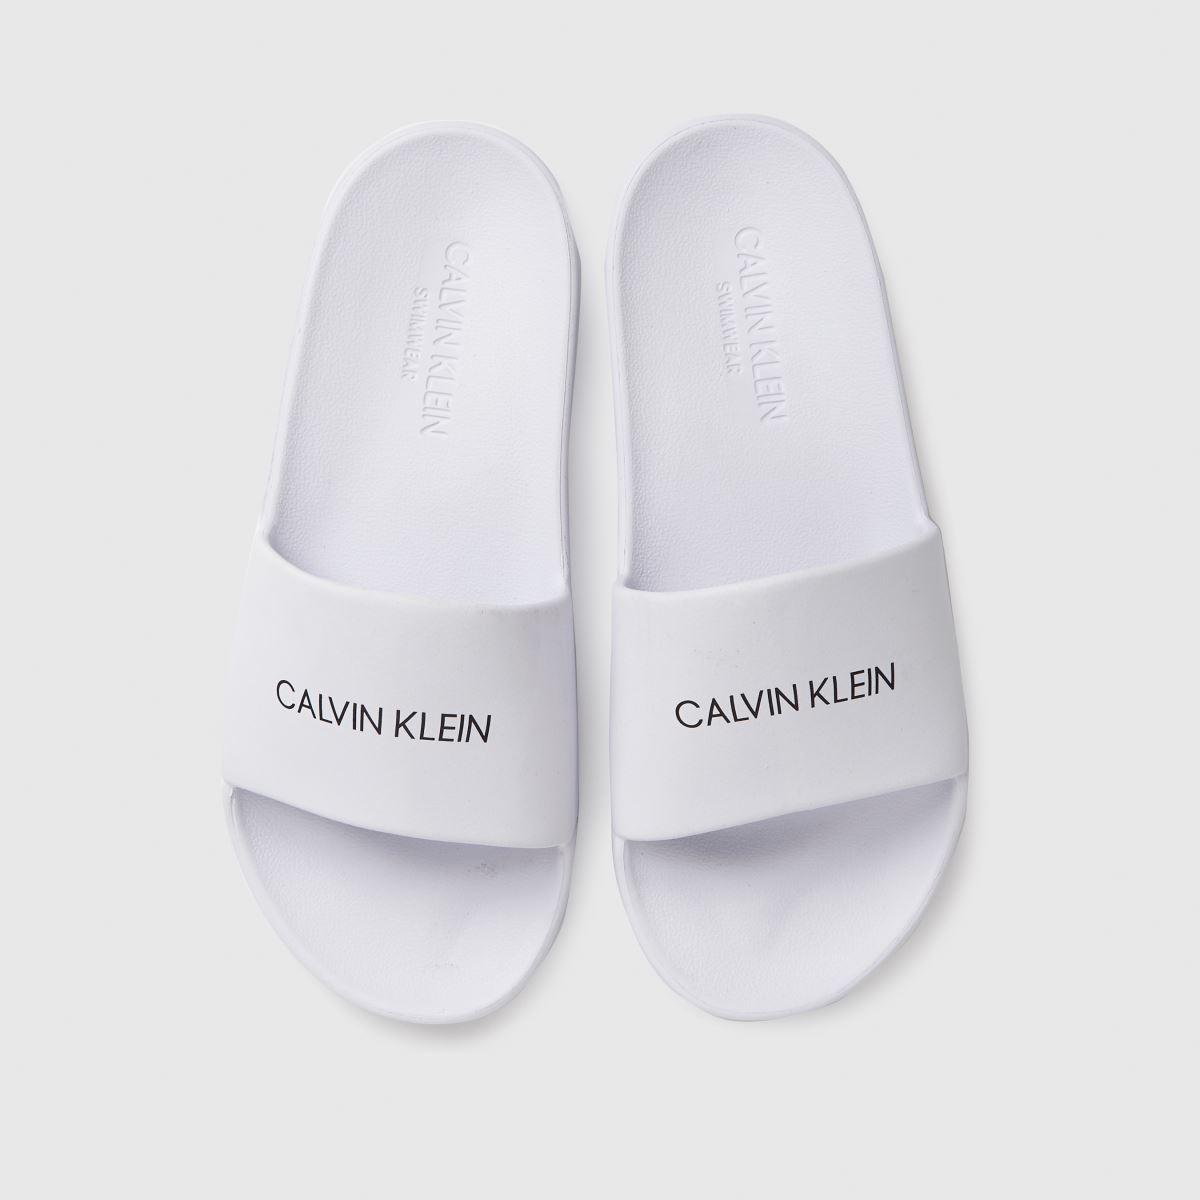 CALVIN KLEIN White Slides Trainers Youth